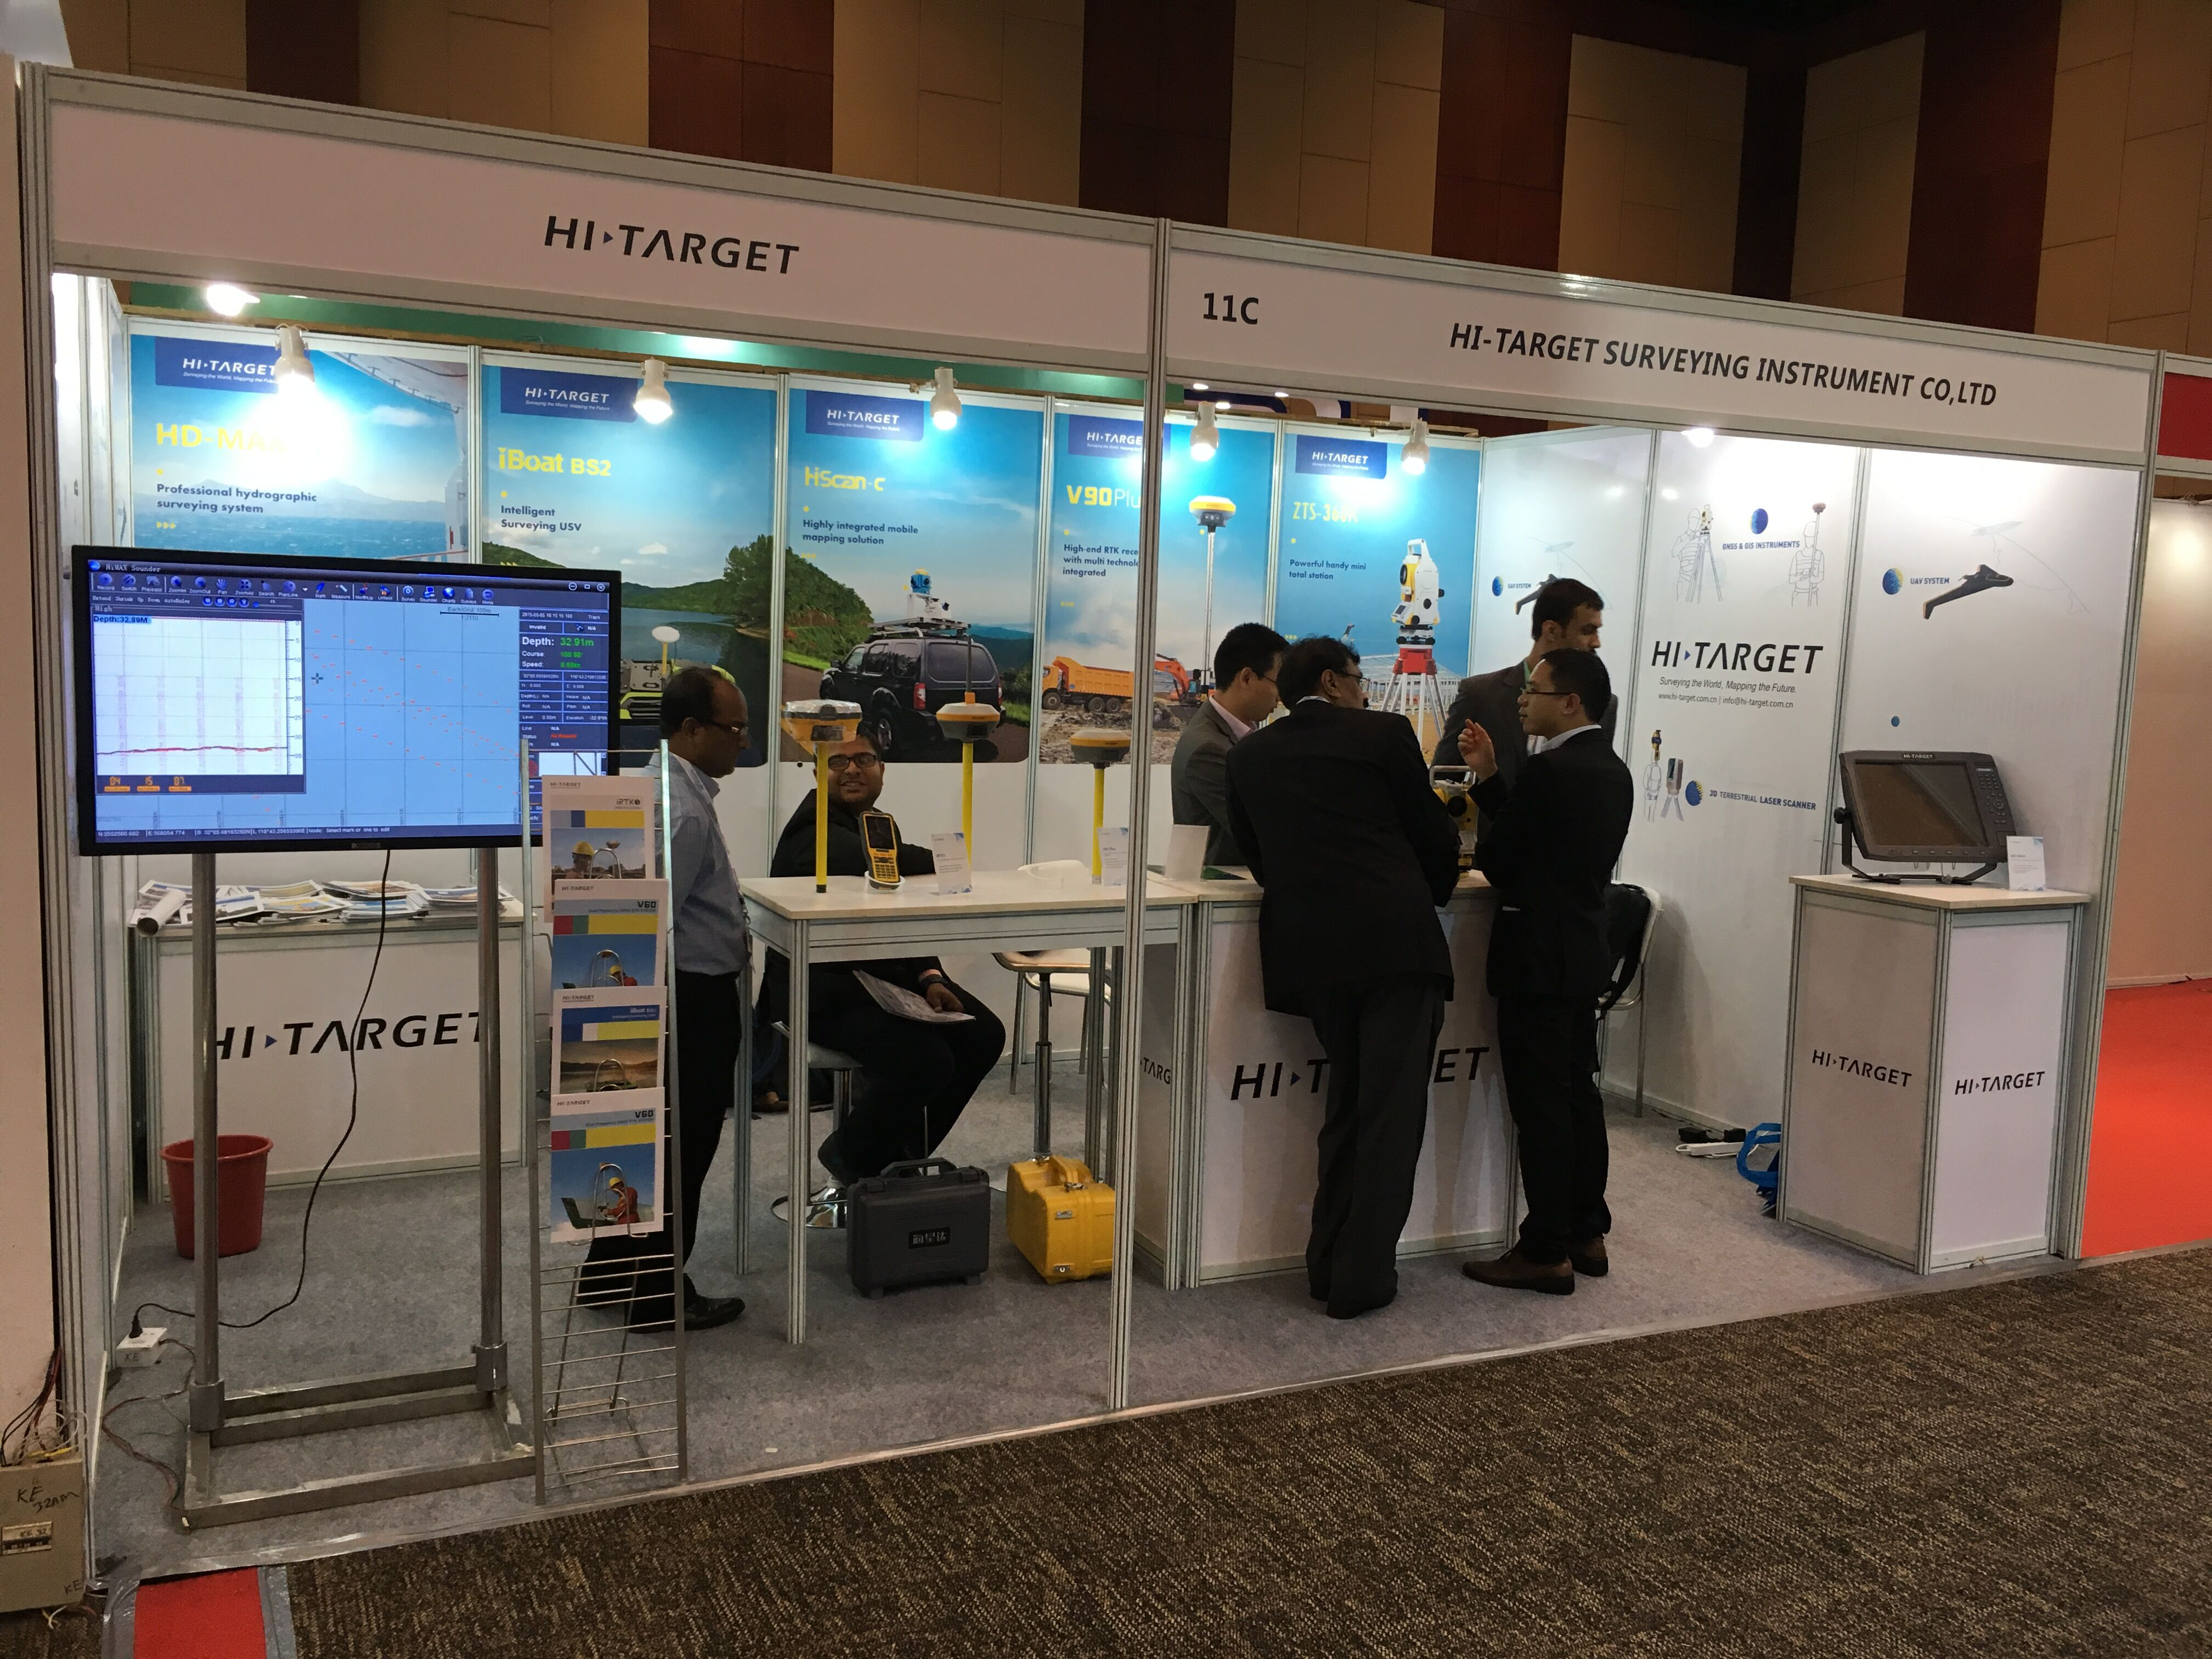 20180125054832078 - Hi-Target displayed its new products at Geospatial World Forum 2018